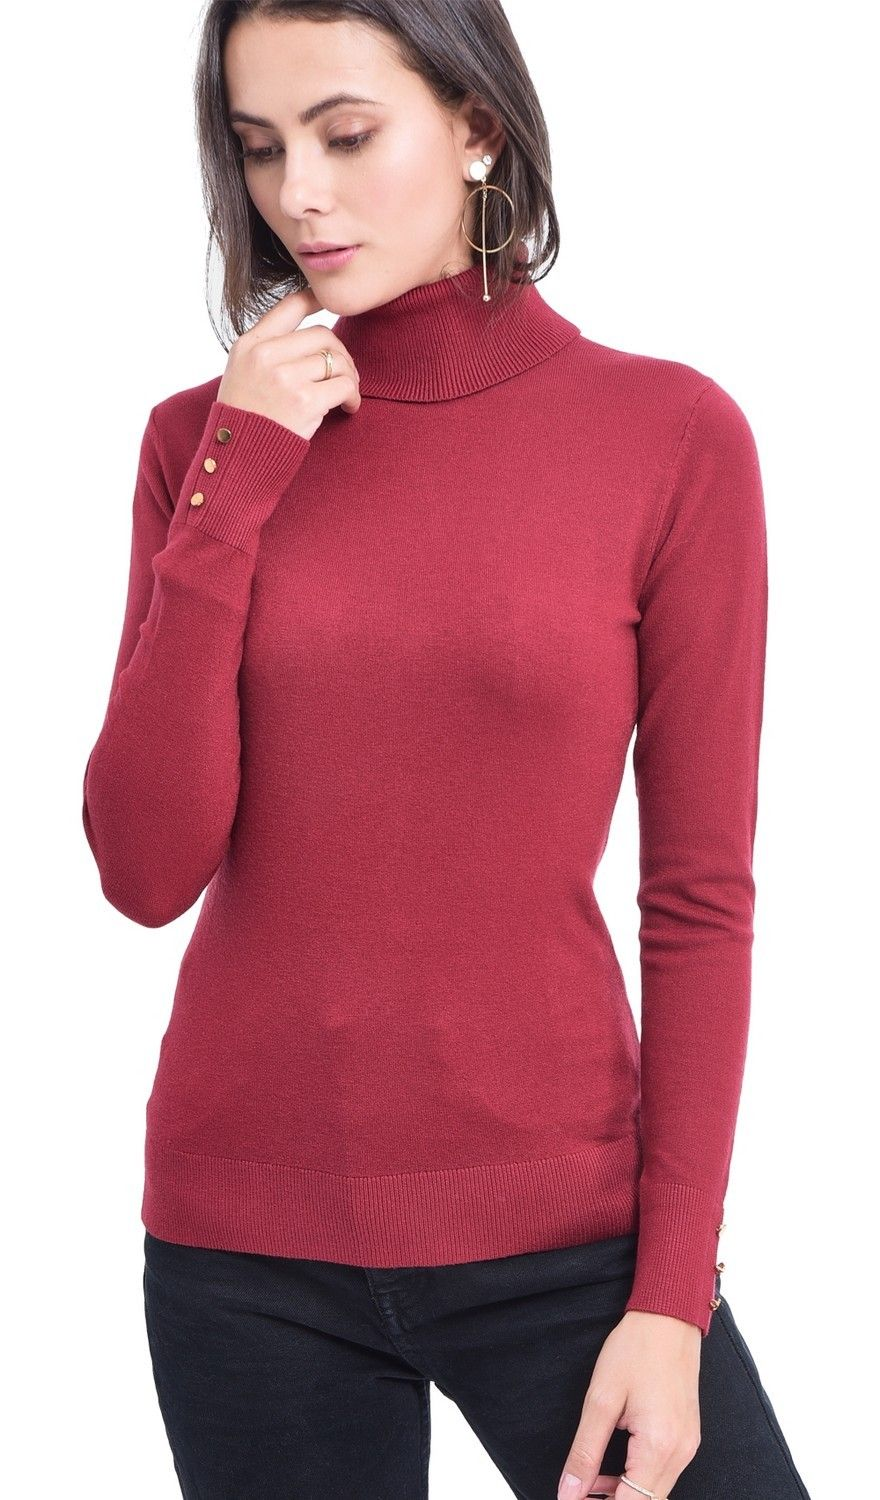 Assuili Roll Neck Sweater with Buttoned Sleeves in Maroon